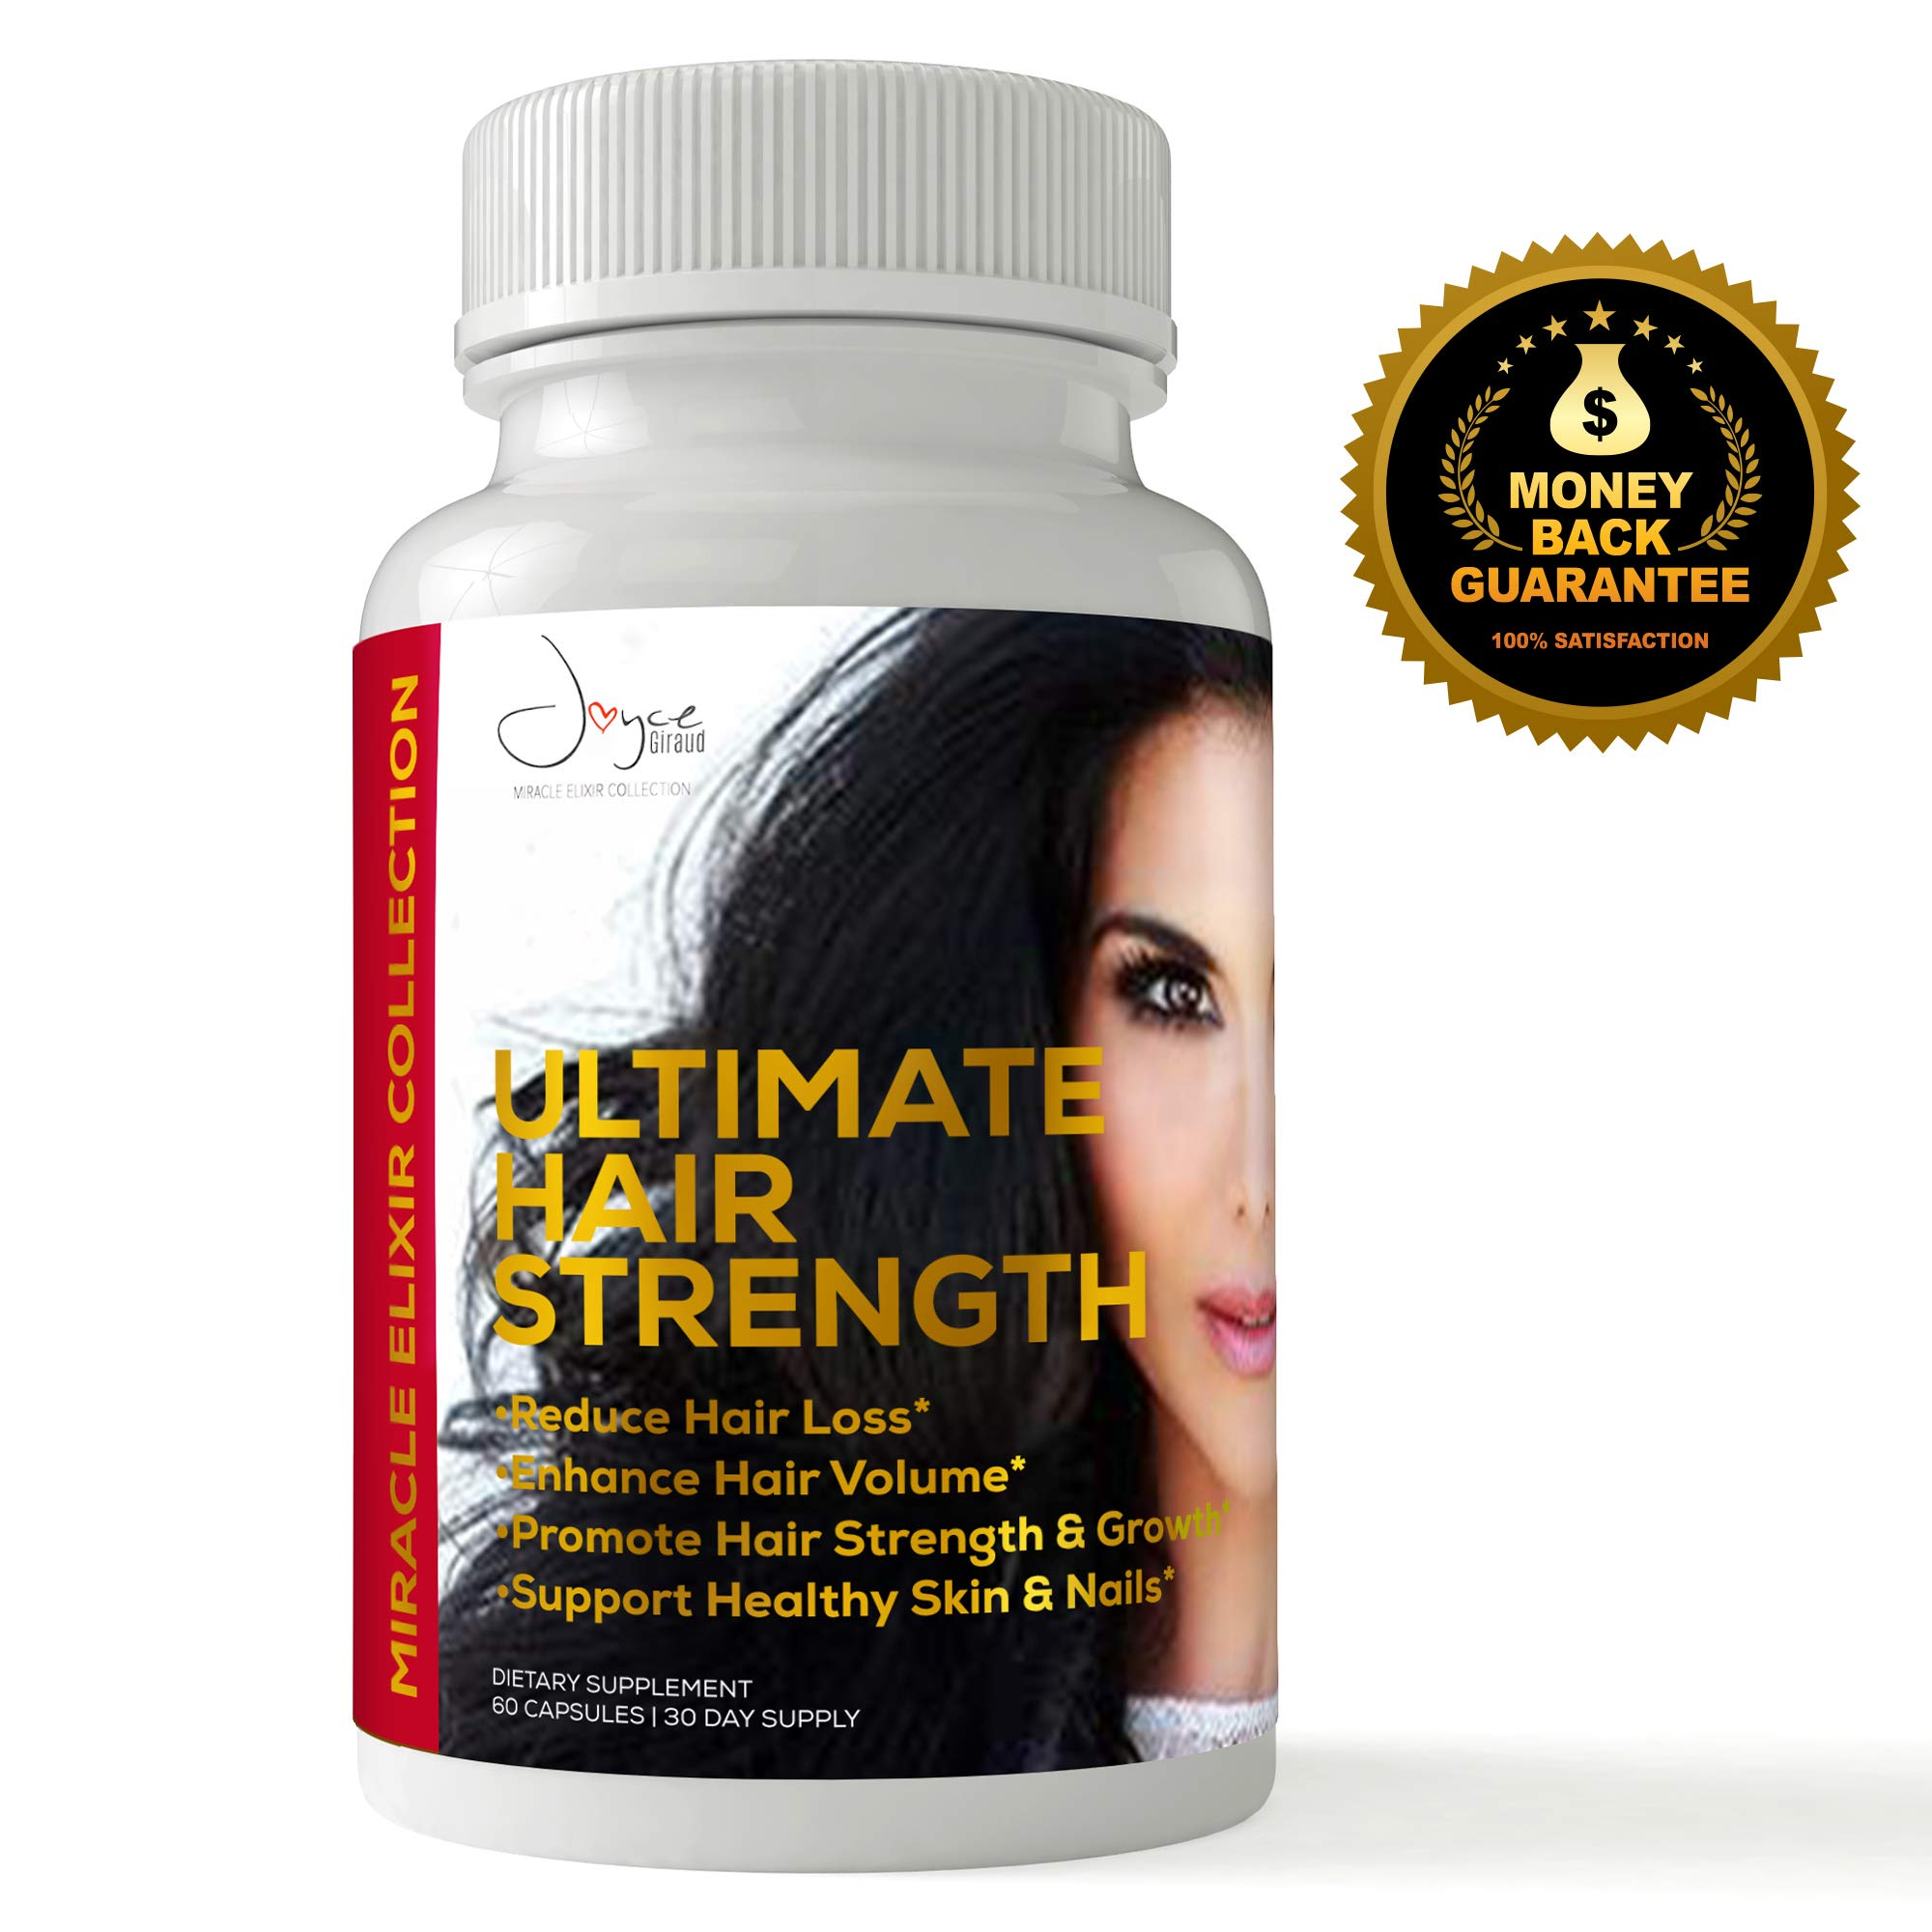 Clinically Proven Ultimate Hair Growth and Strength Supplement (100% Drug Free) Reduces Hair Loss and Thinning. Support Stronger, Longer, and Healthier Hair … (120)